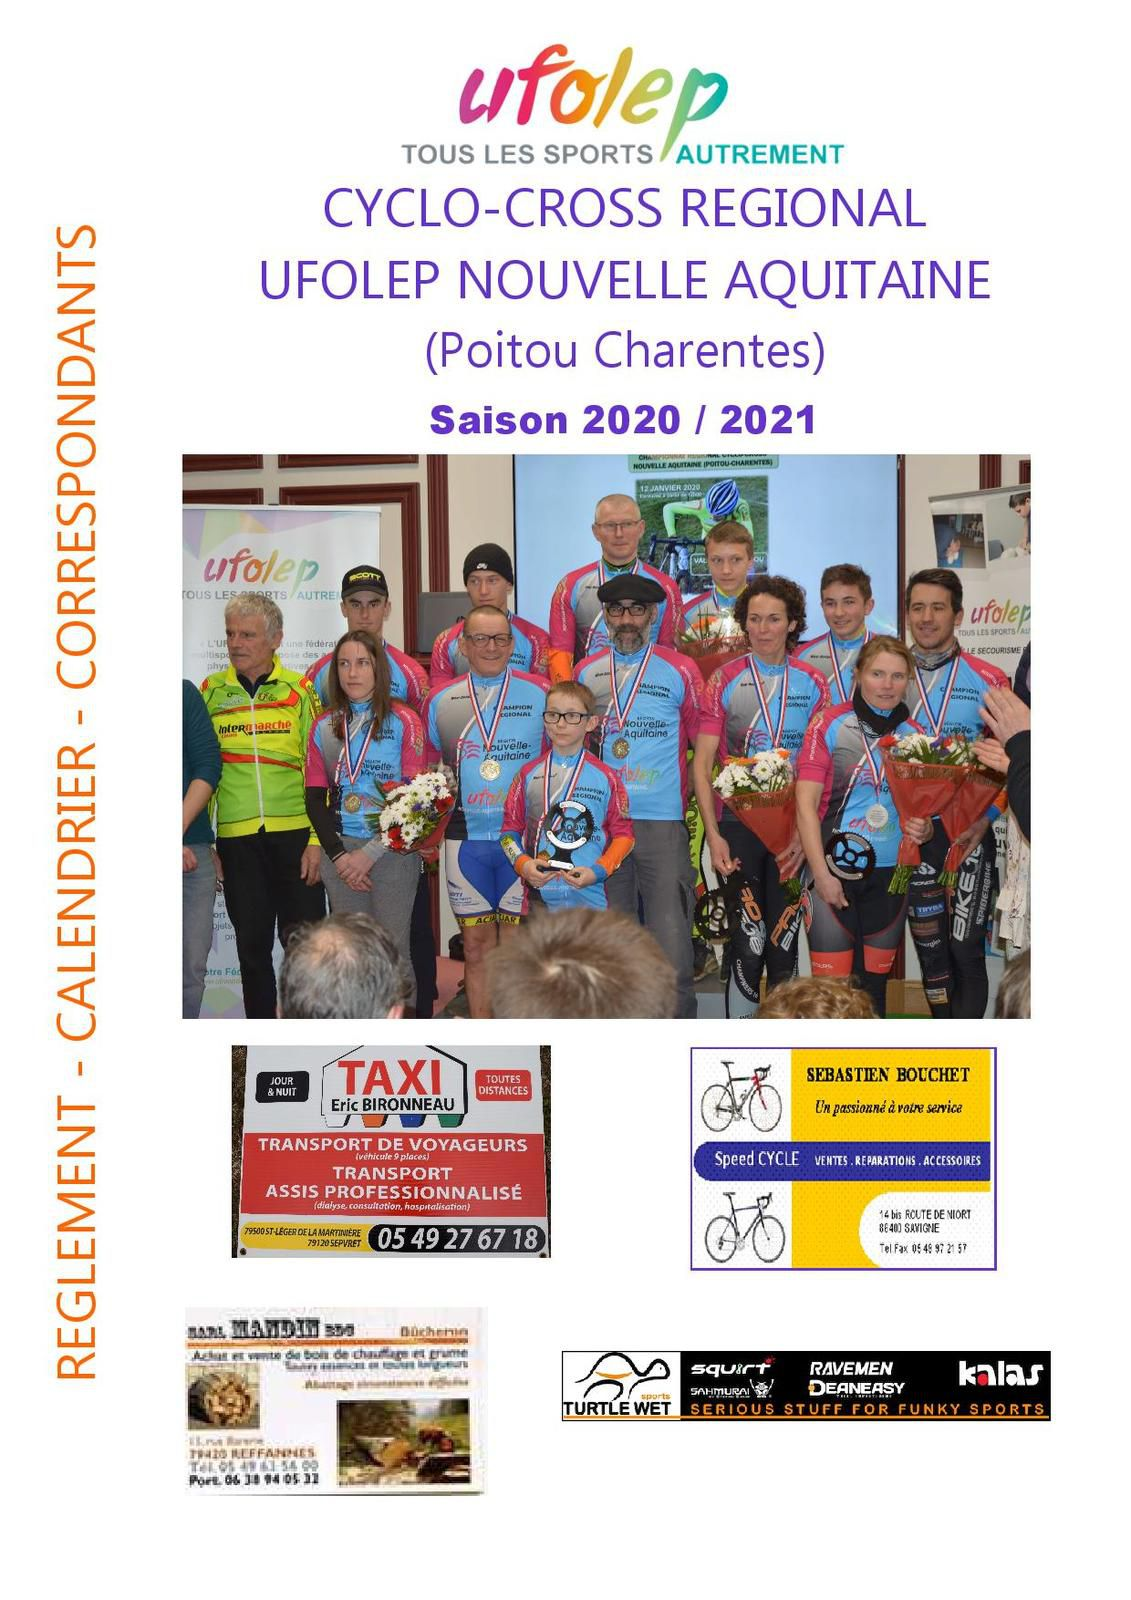 file:///C:/Users/chris/Downloads/Calendrier%20R%C3%A9gl.%20Cyclo-cross%202020-2021.pdf